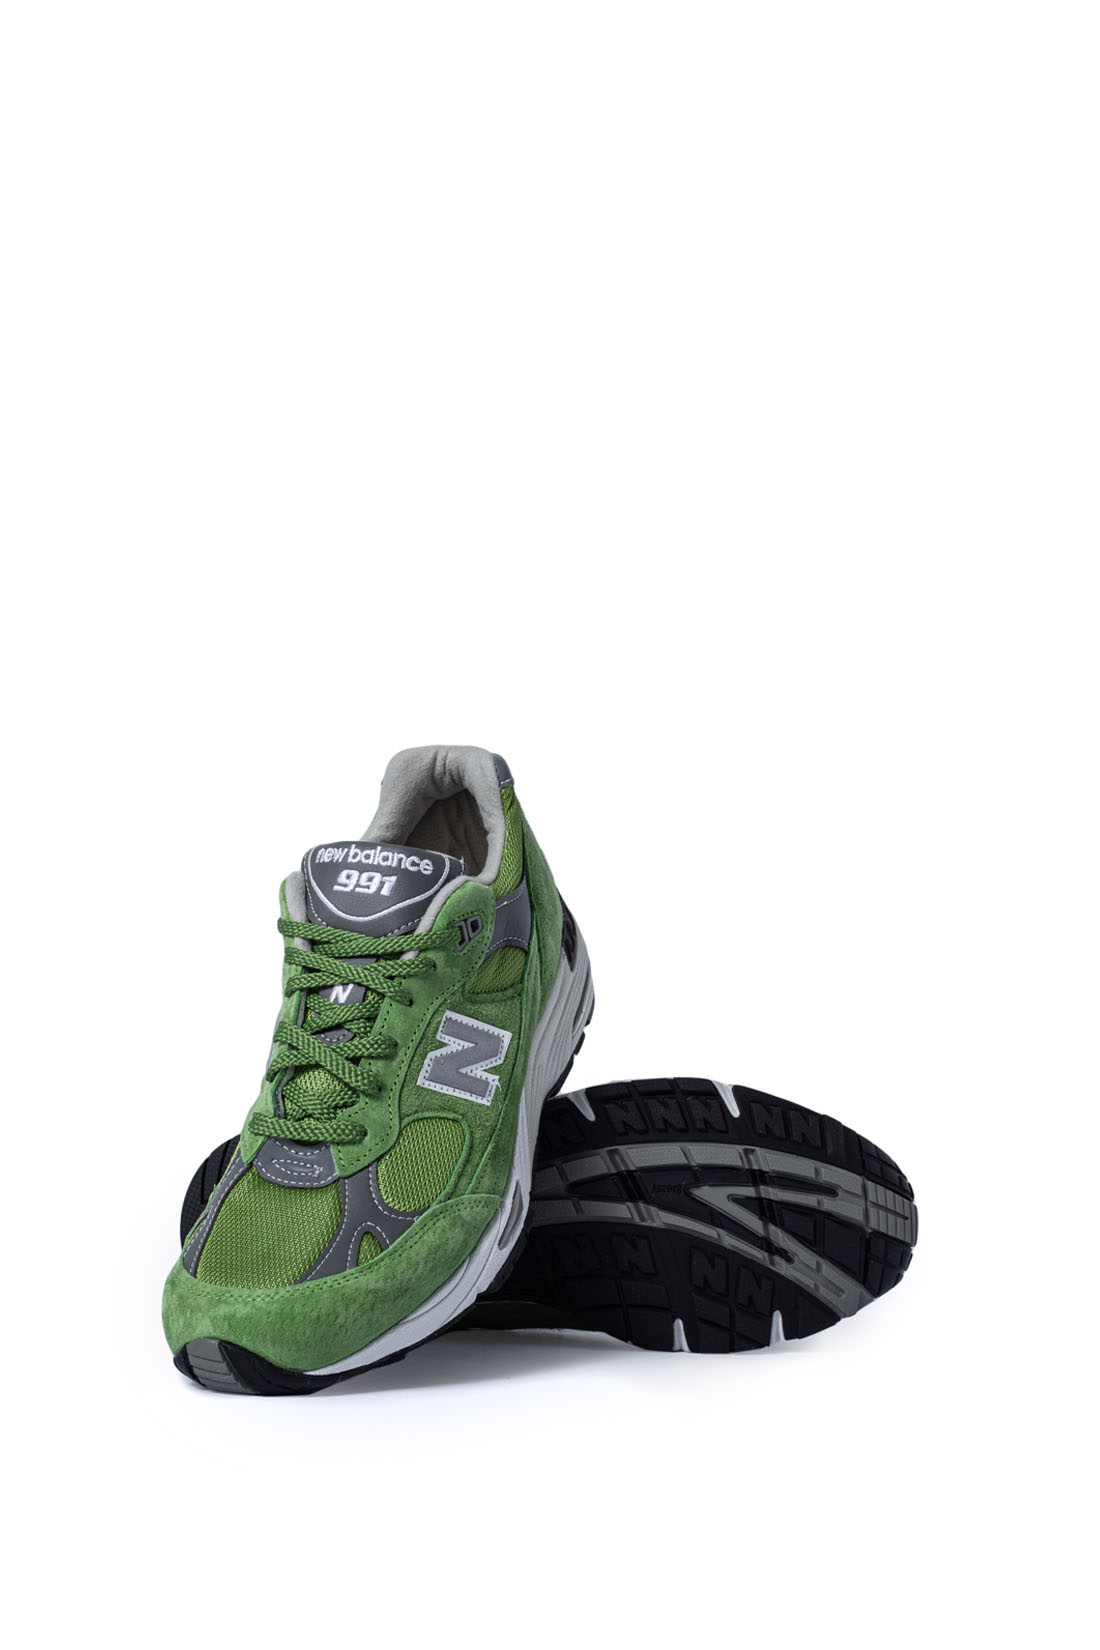 NEW BALANCE - Men's 991 Made in UK sneakers